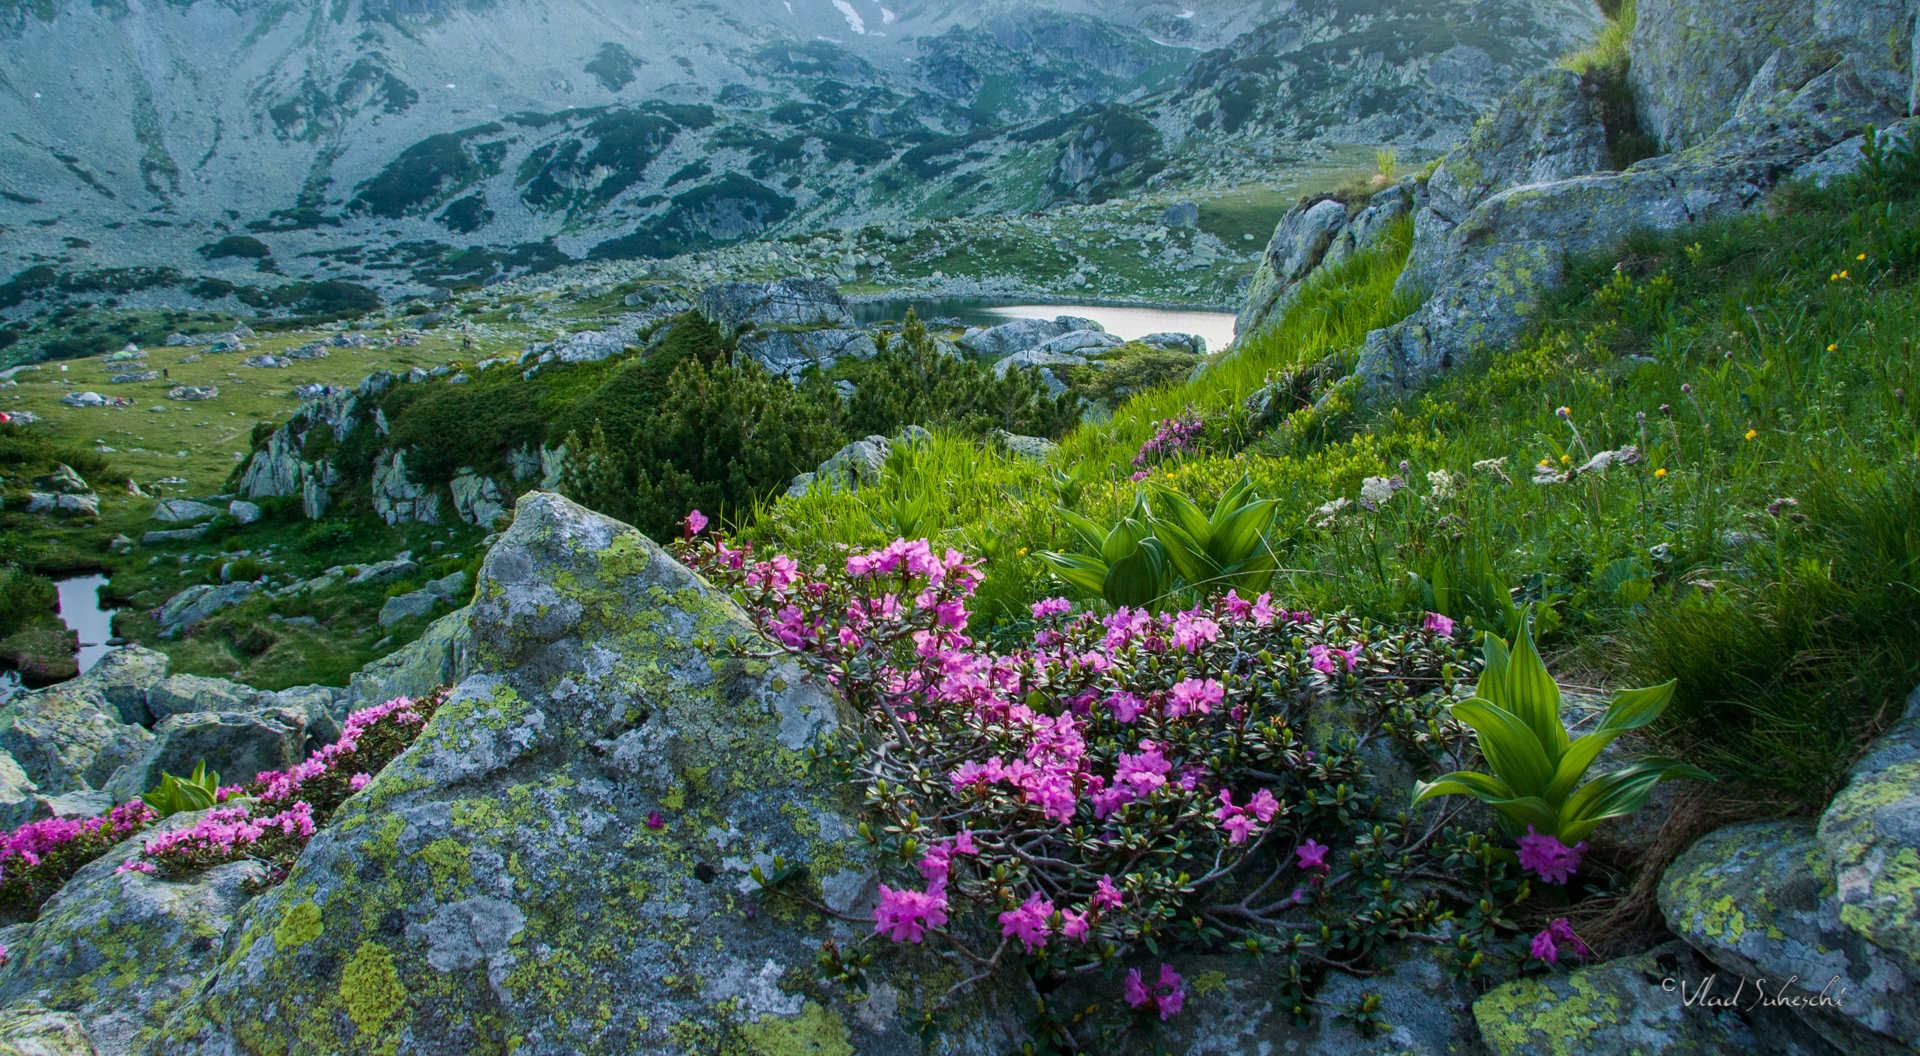 Rhododendron Retezat Mountains ,The Carpathians Romania